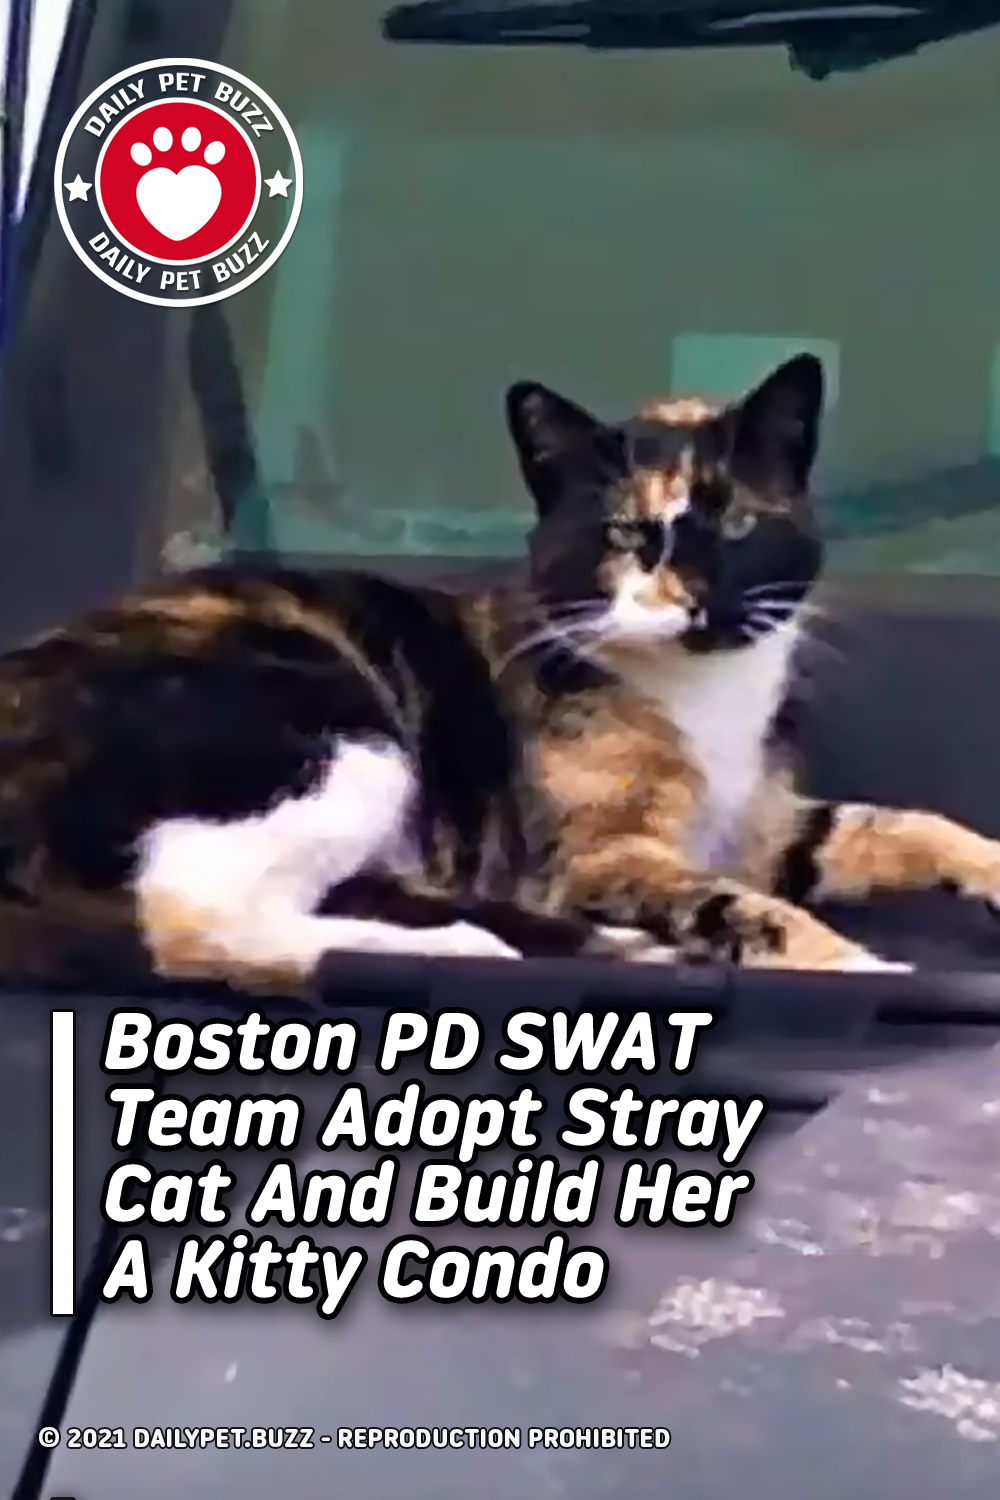 Boston PD SWAT Team Adopt Stray Cat And Build Her A Kitty Condo